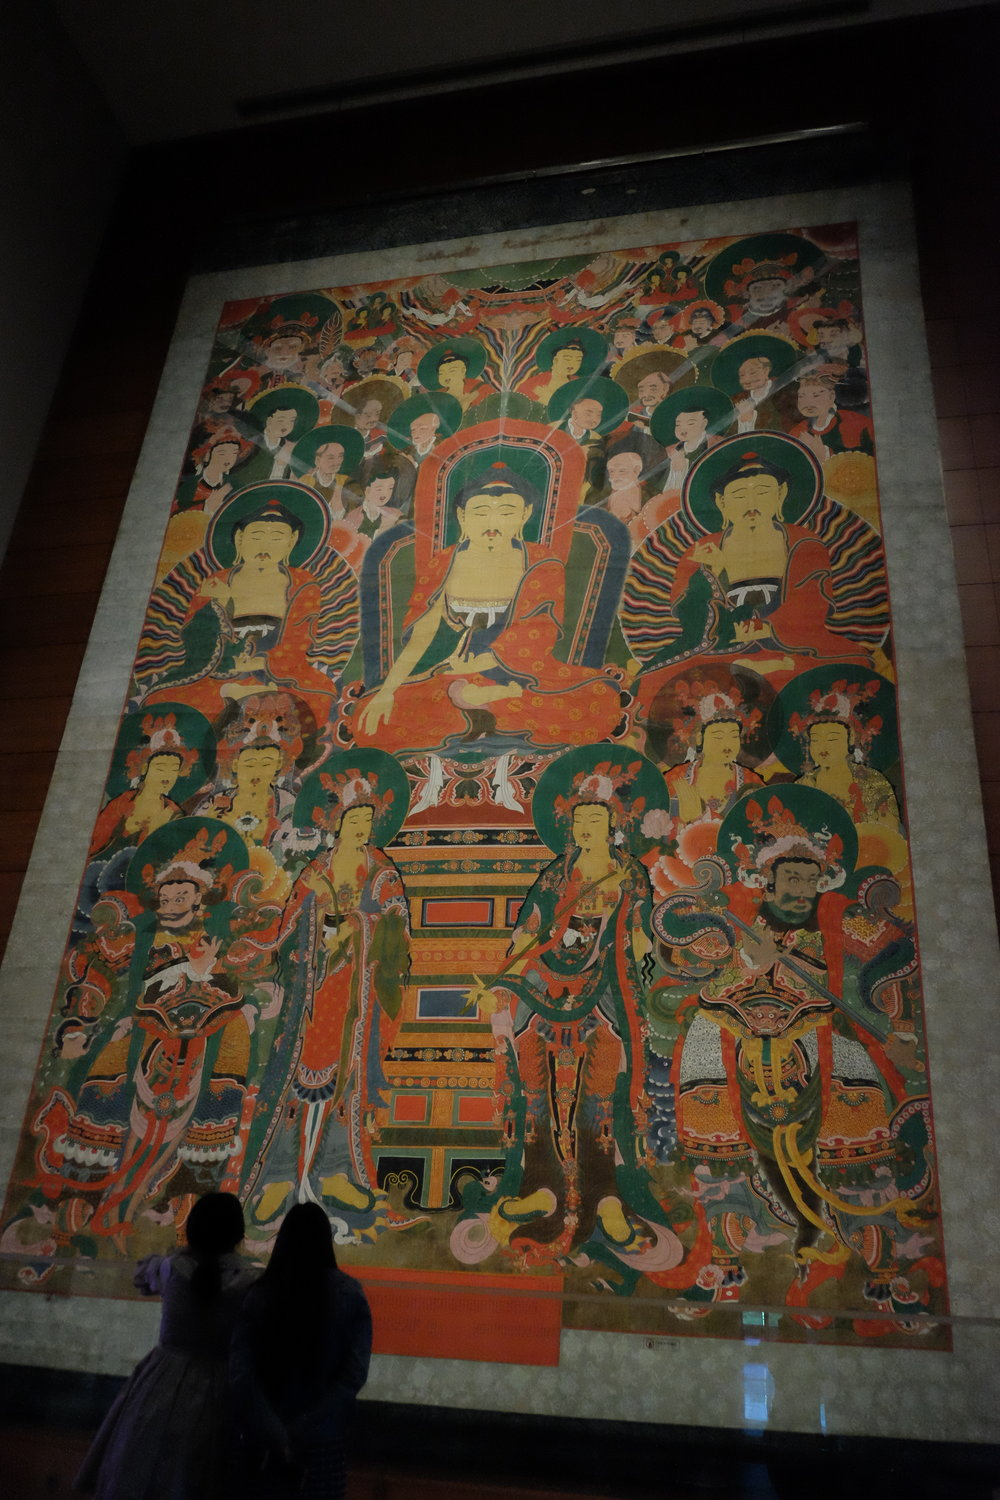 """When we were there, the """"Gathering of the Three Buddhas"""" exhibition was going on and boy, were we glad to see it. Normally hung in Yongheungsa Temple, this large-scale Buddhist hanging scroll depicts depicts a gathering of Śākyamuni Buddha, Bhaisajyaguru Buddha, and Amitābha Buddha hosted by Śākyamuni Buddha, the ruler of the secular world. People prayed to these three Buddhas for a long life free from illness, and hoped for a rebirth in the Western Paradise. To illustrate how tall it is, see the two women in the lower left for scale."""